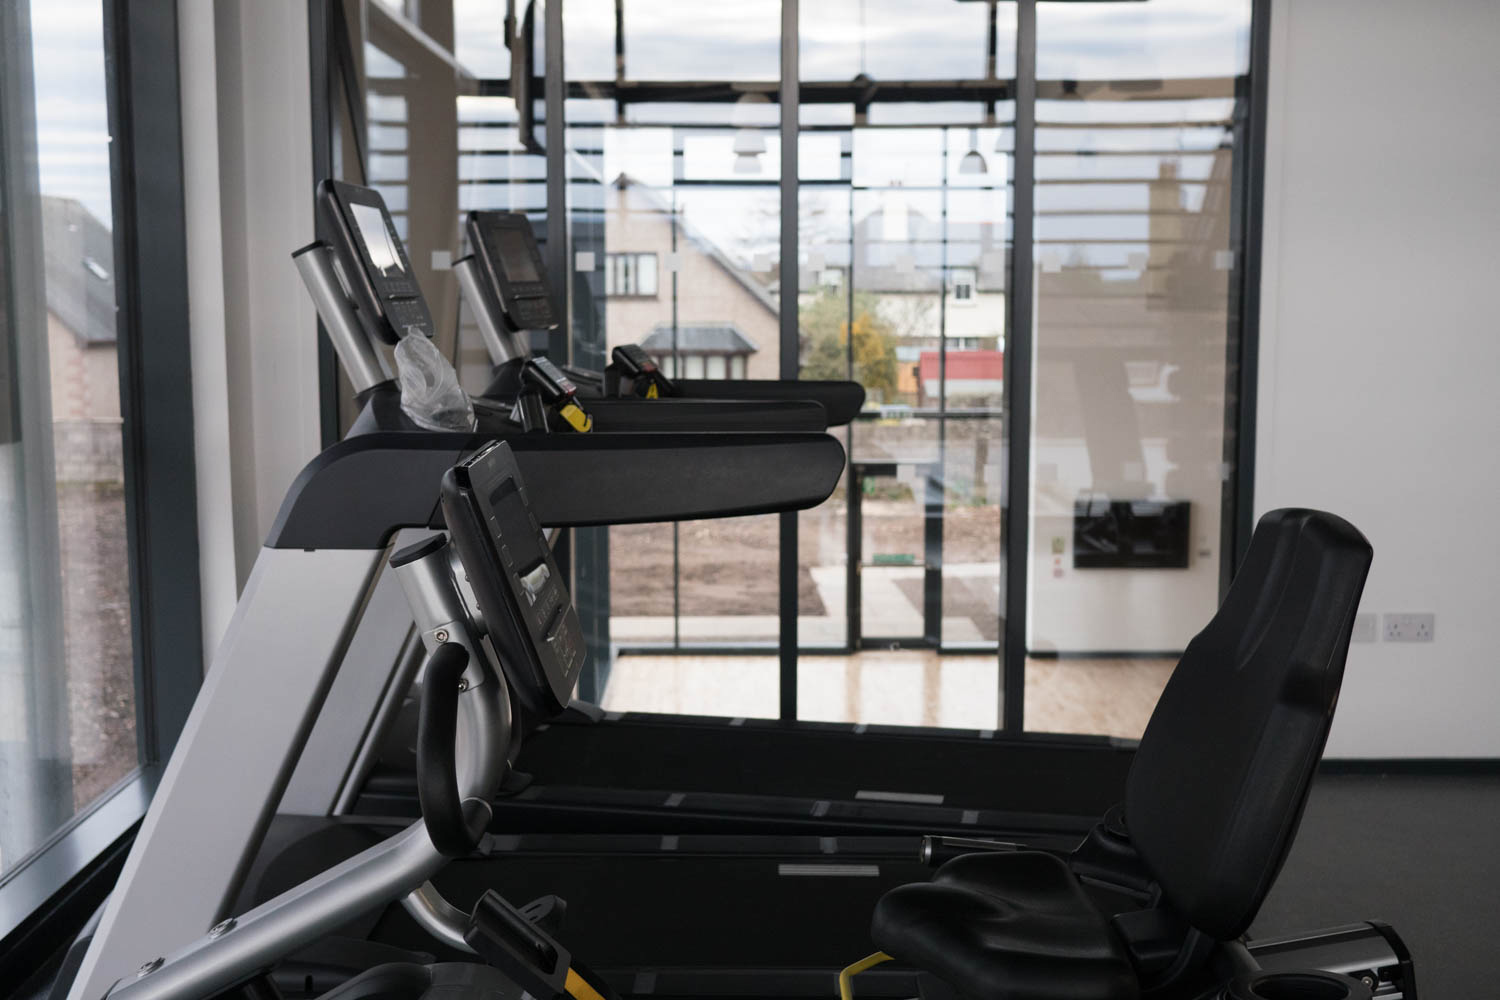 Exercise Equipment at the Hub